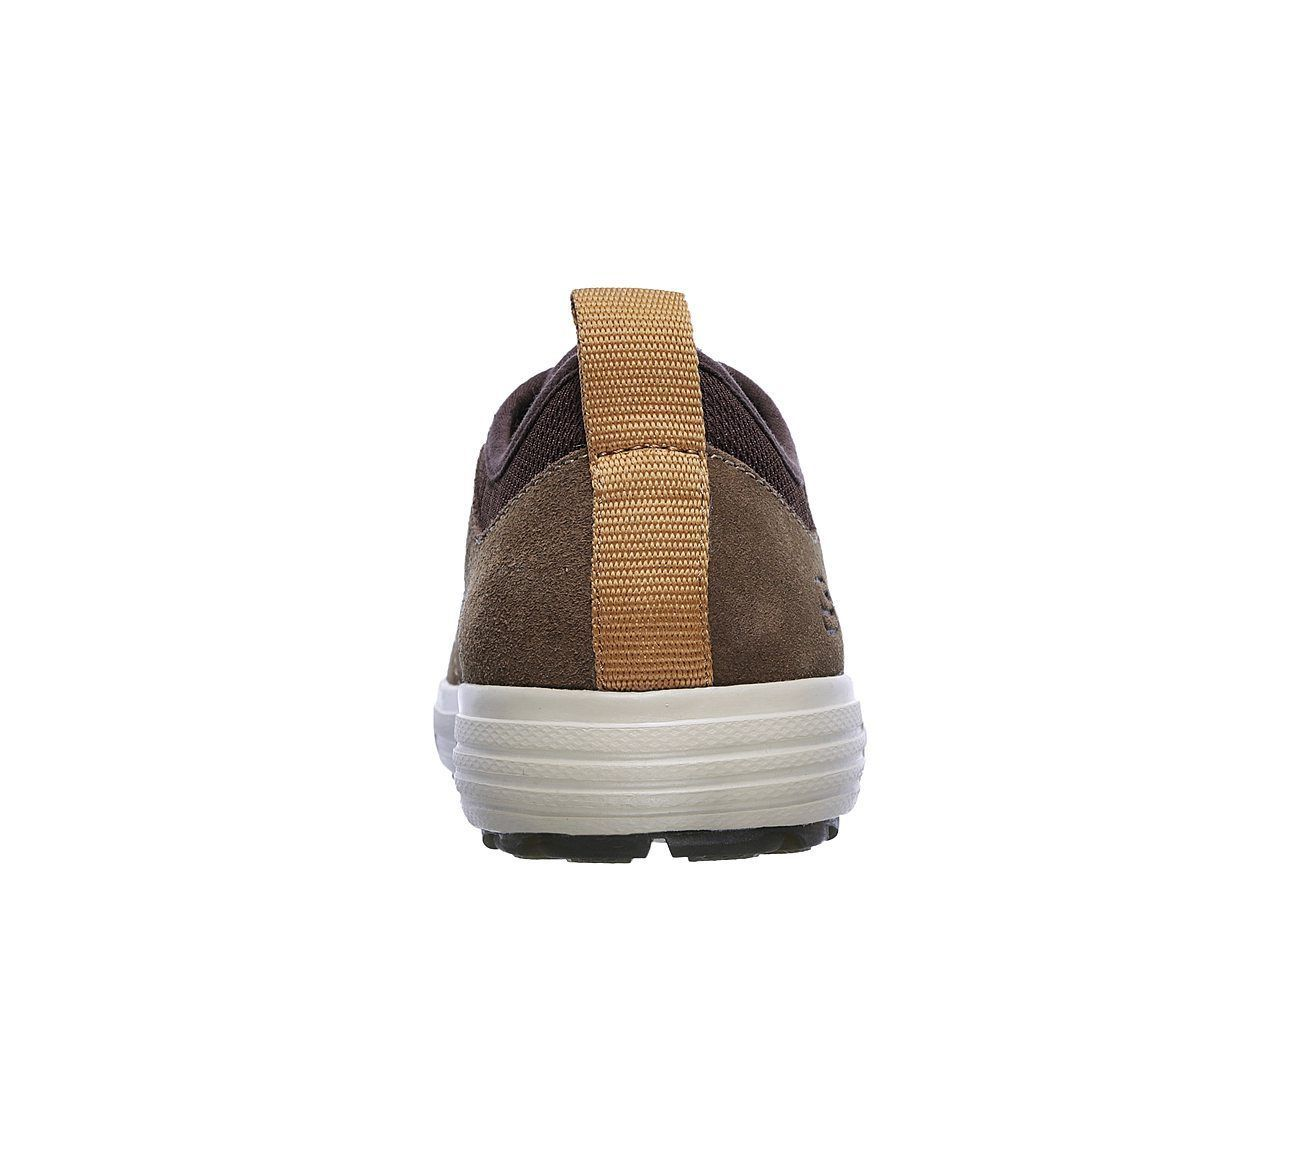 Men's SKECHERS SKECH-AIR: PORTER - ELDEN Casual Shoe, 65141 BGE Sizes 8-14 Beige